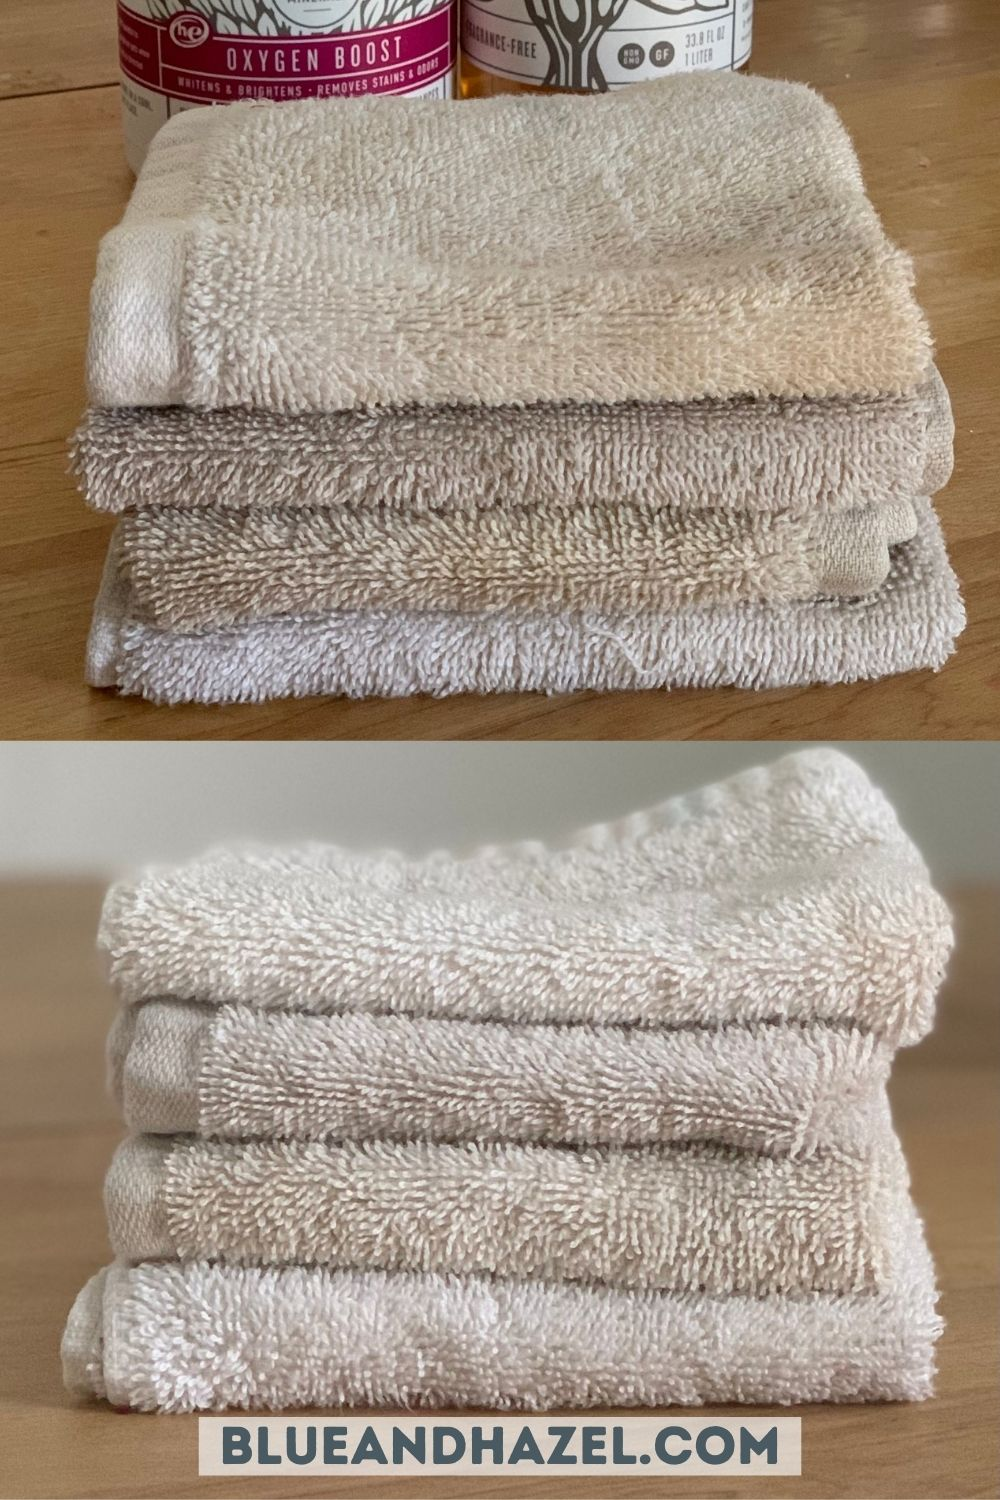 a stack of stained wash cloths before and after using Branch Basics oxygen boost to whiten them.